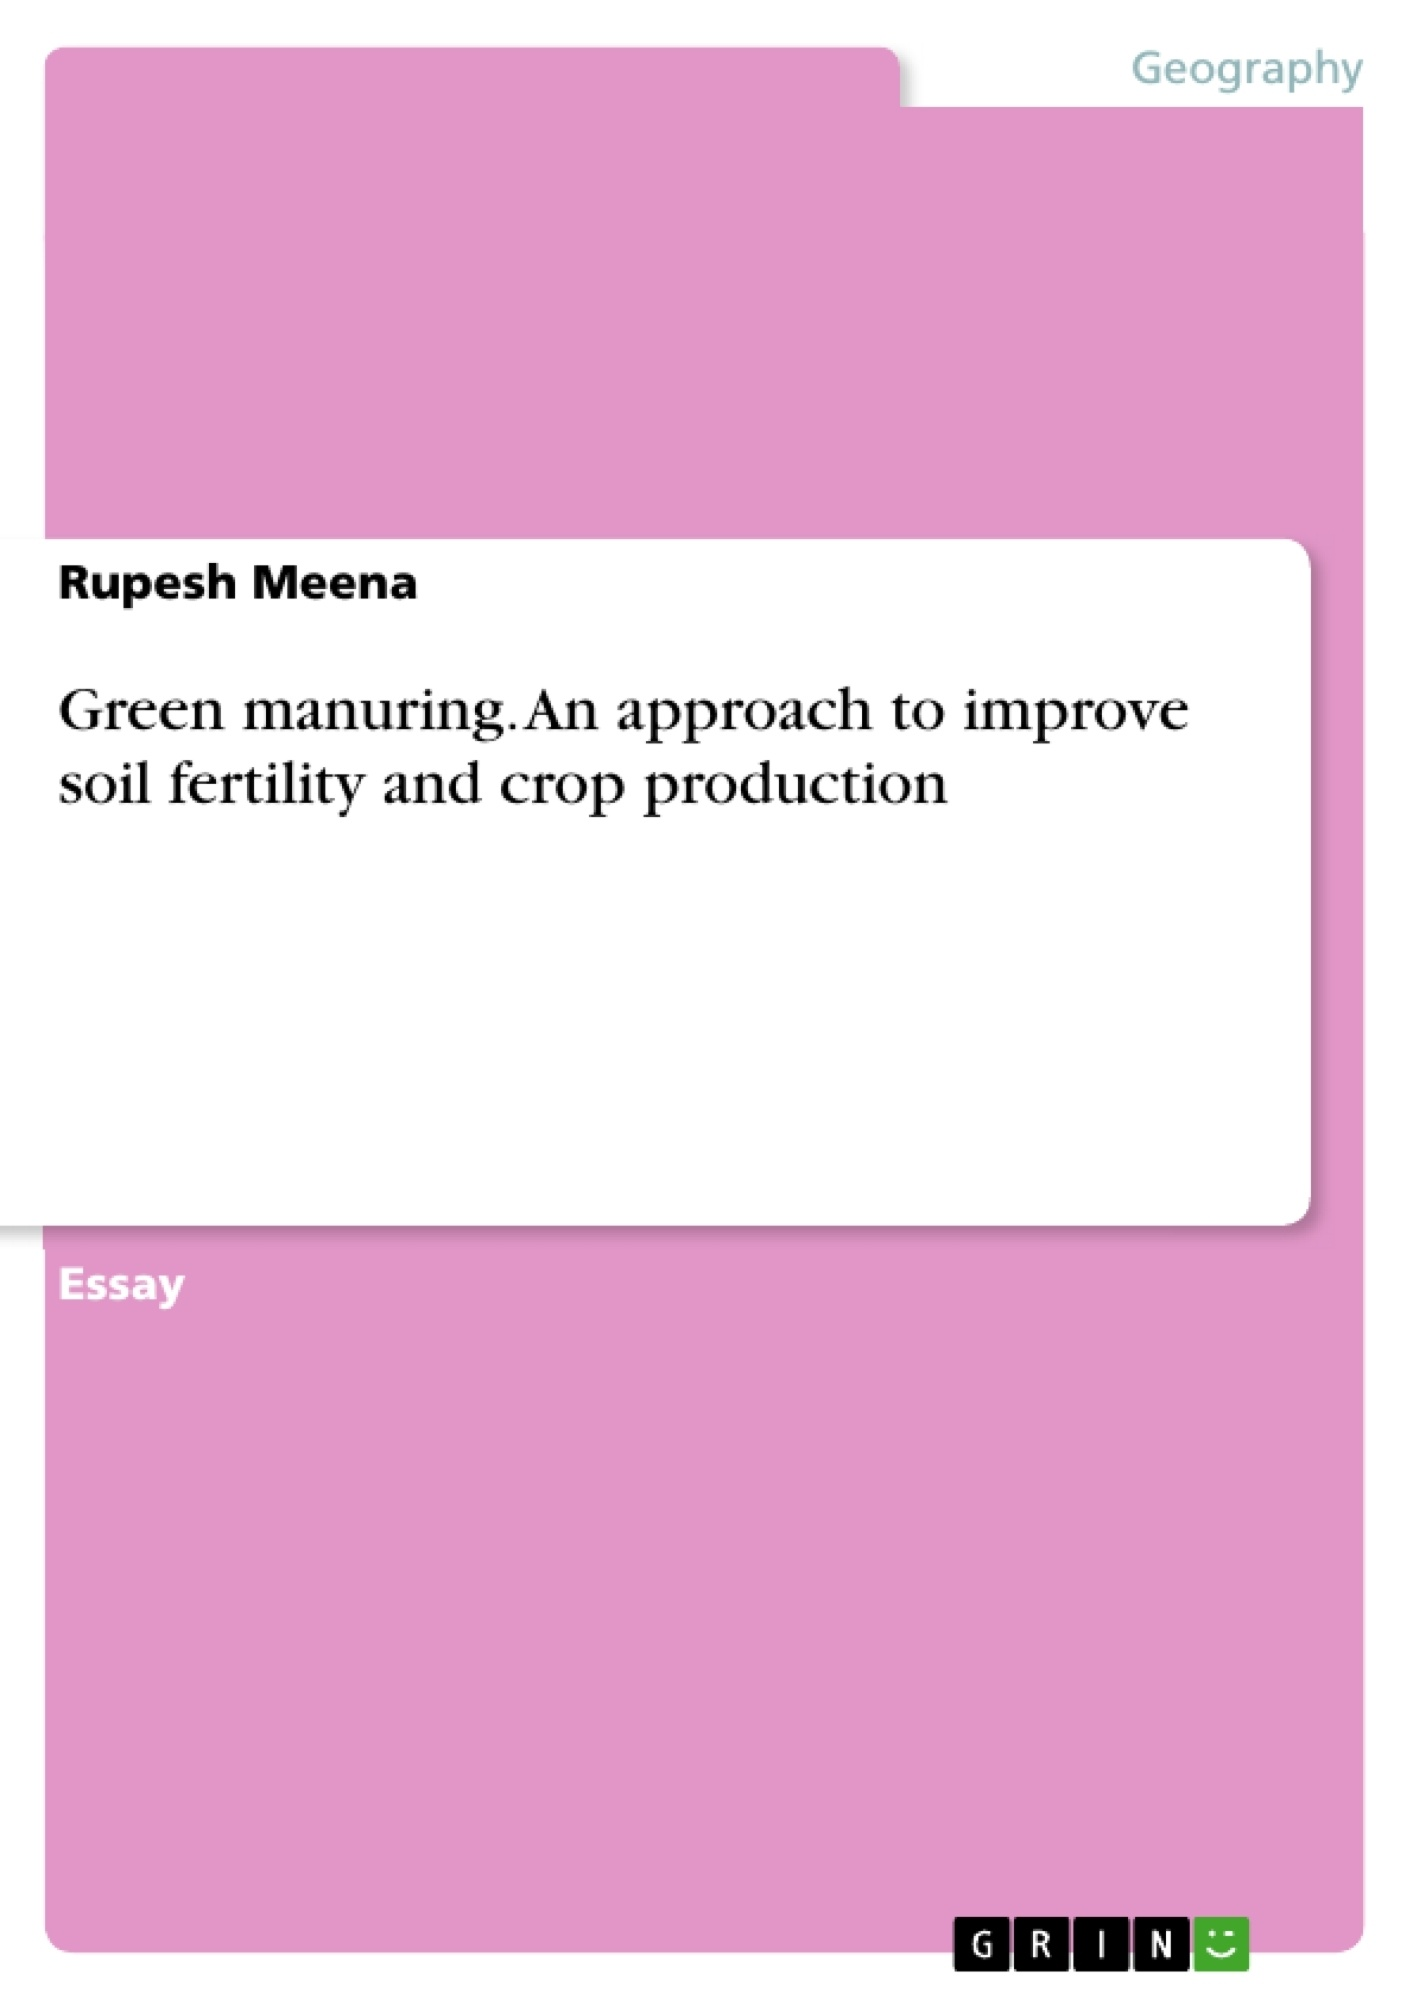 Title: Green manuring. An approach to improve soil fertility and crop production